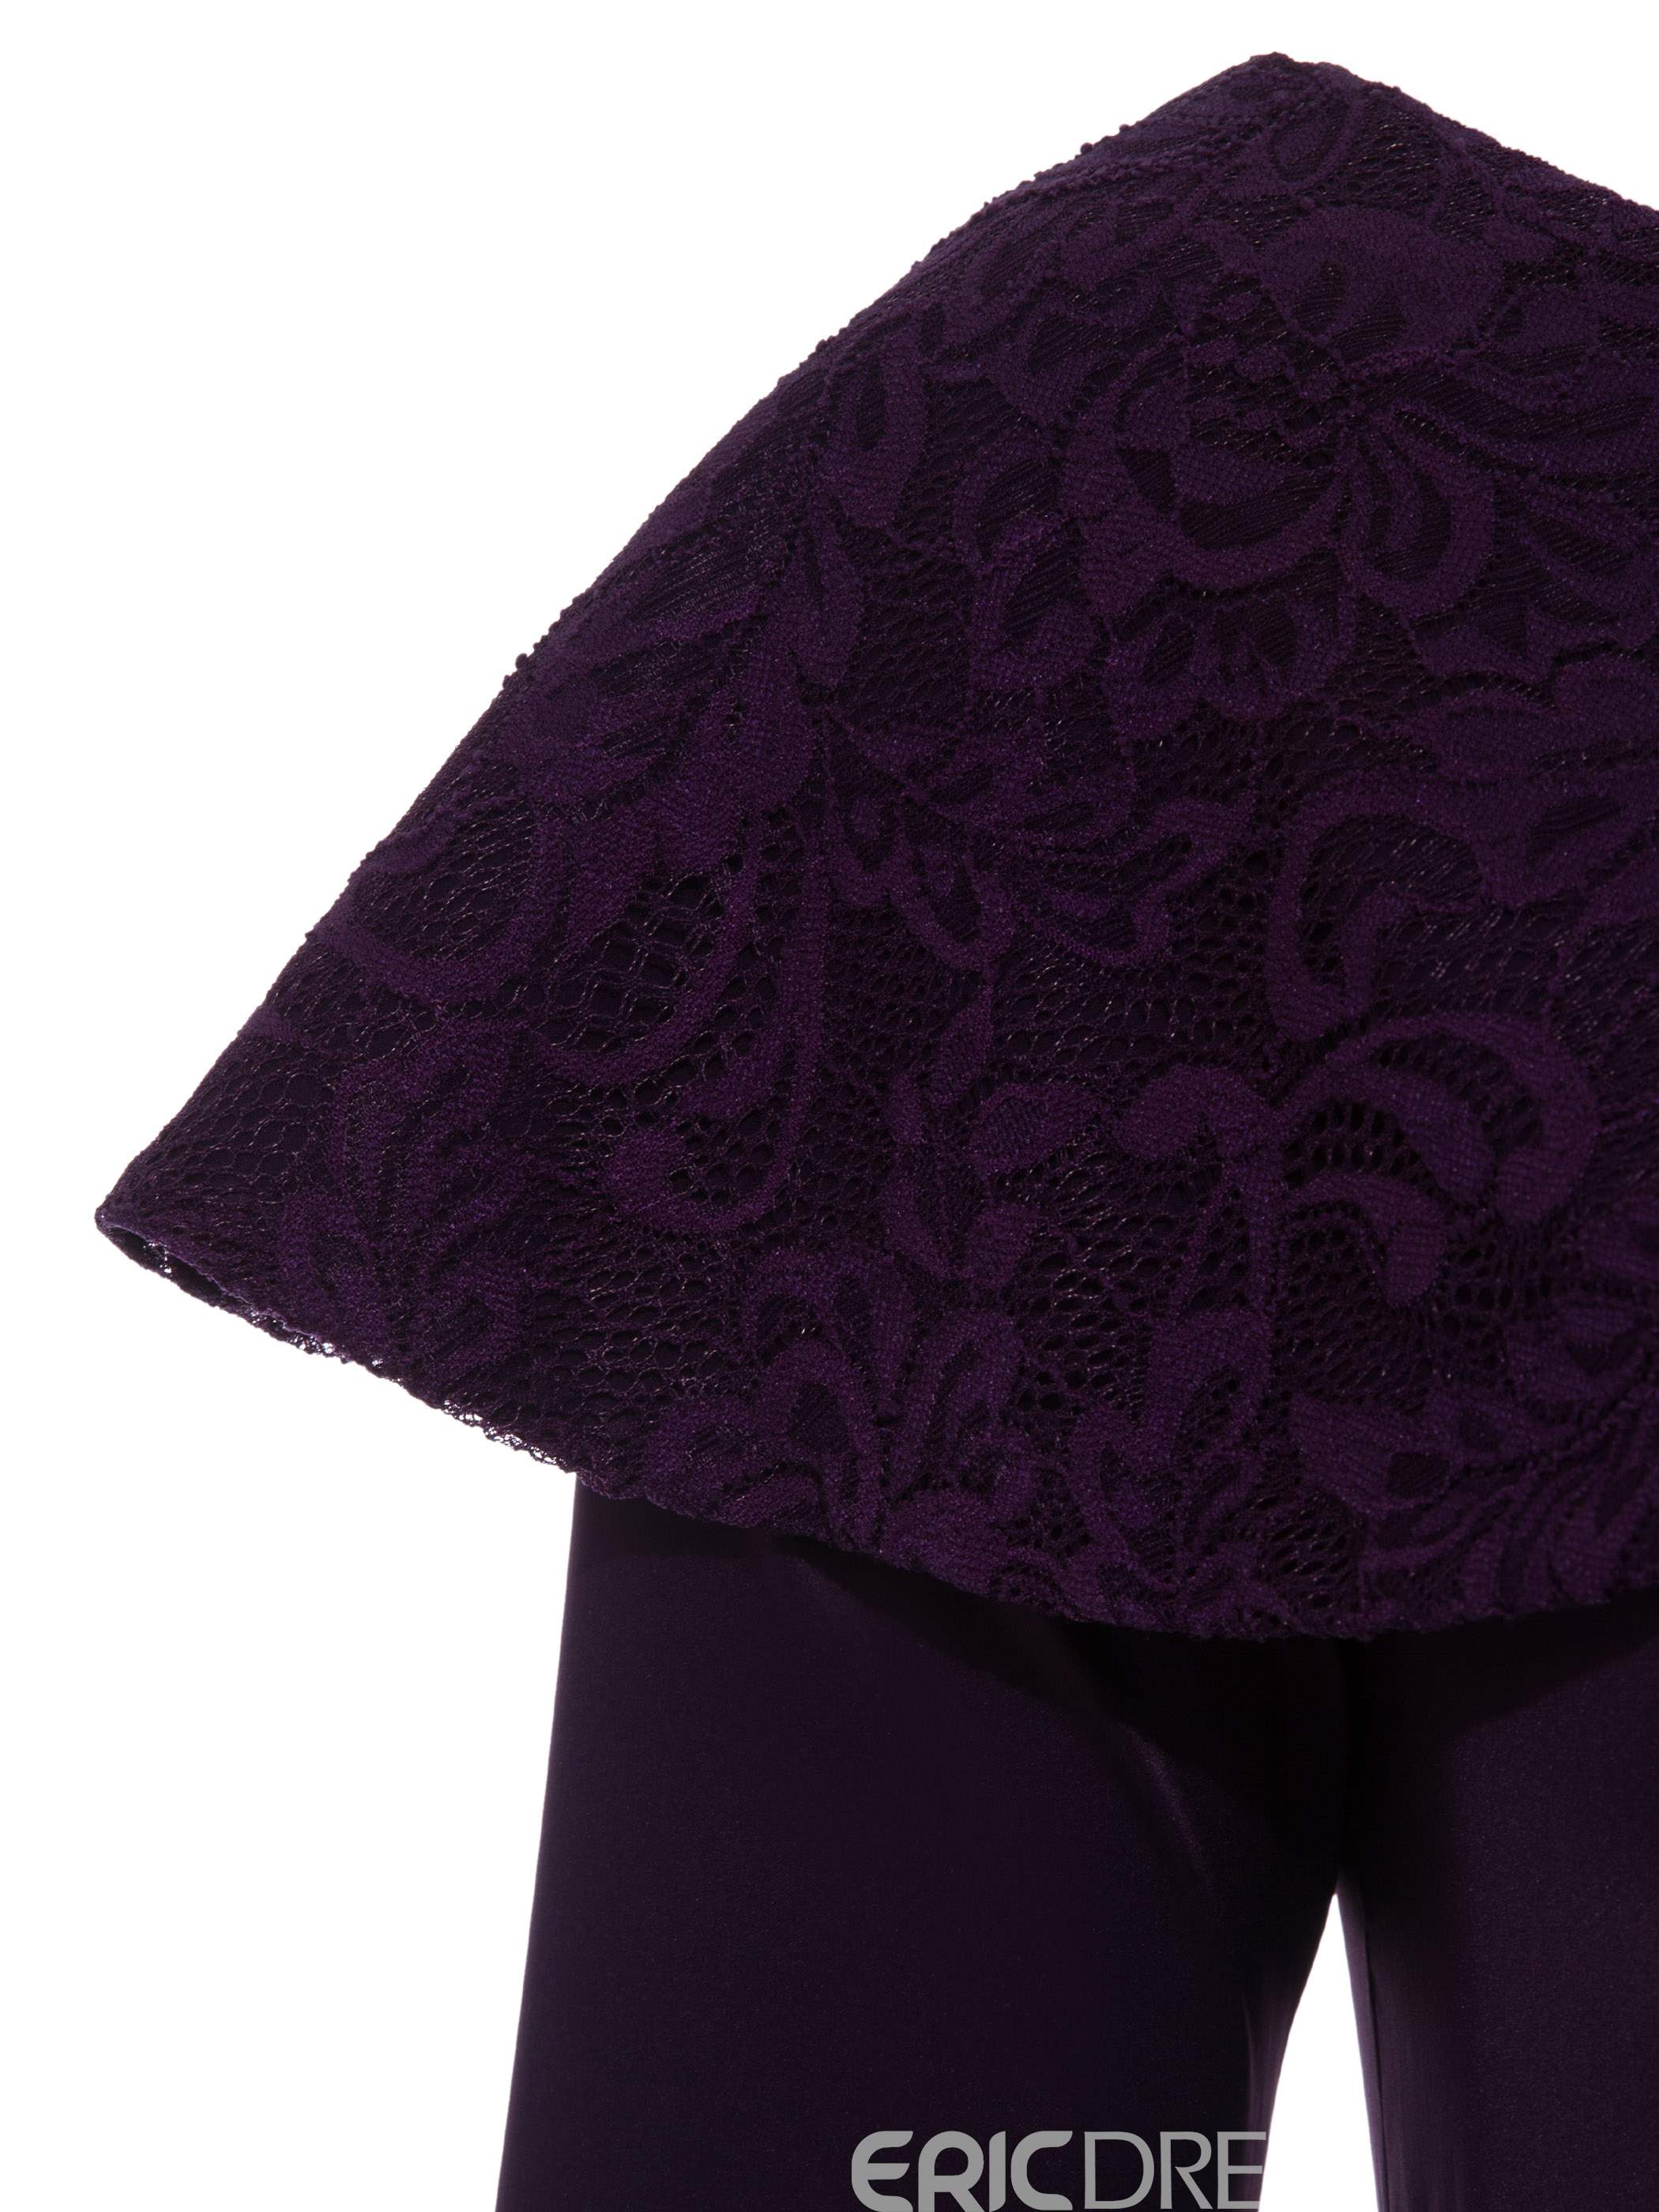 Ericdress Dark Purple Asymmetric Ruffle Lace Bodycon Dress